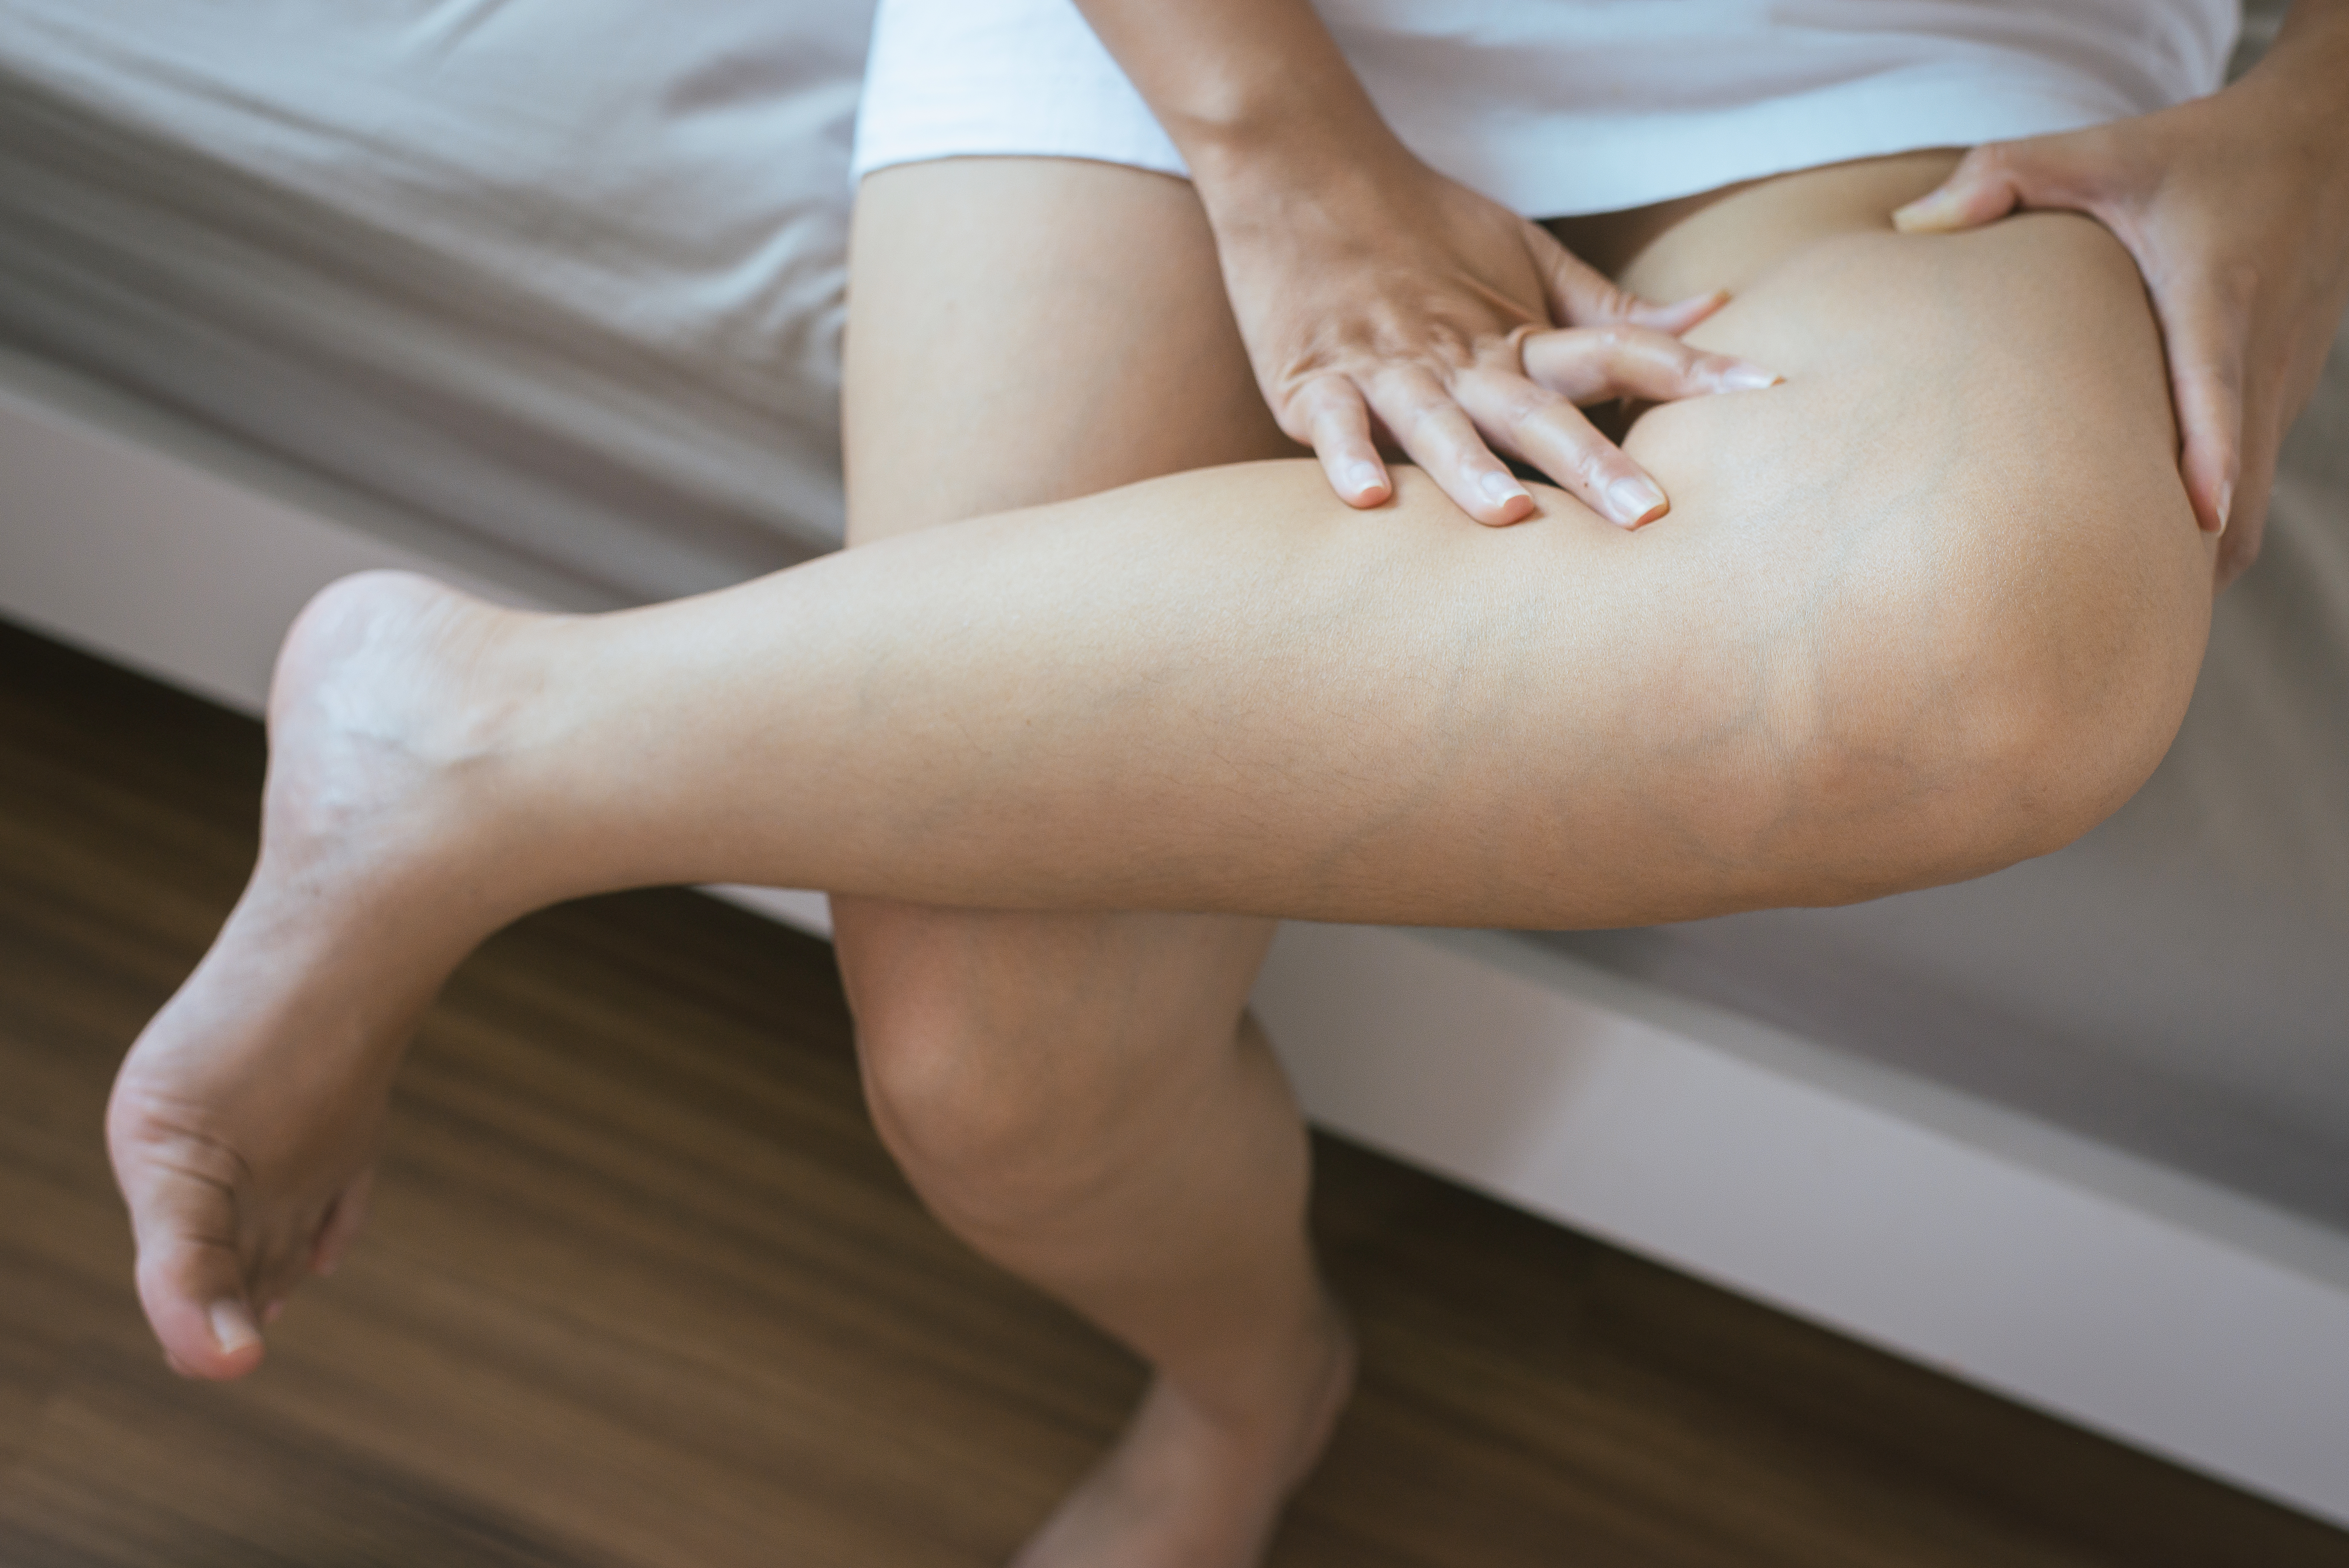 Can Leg Shaking Be Caused by ADHD?